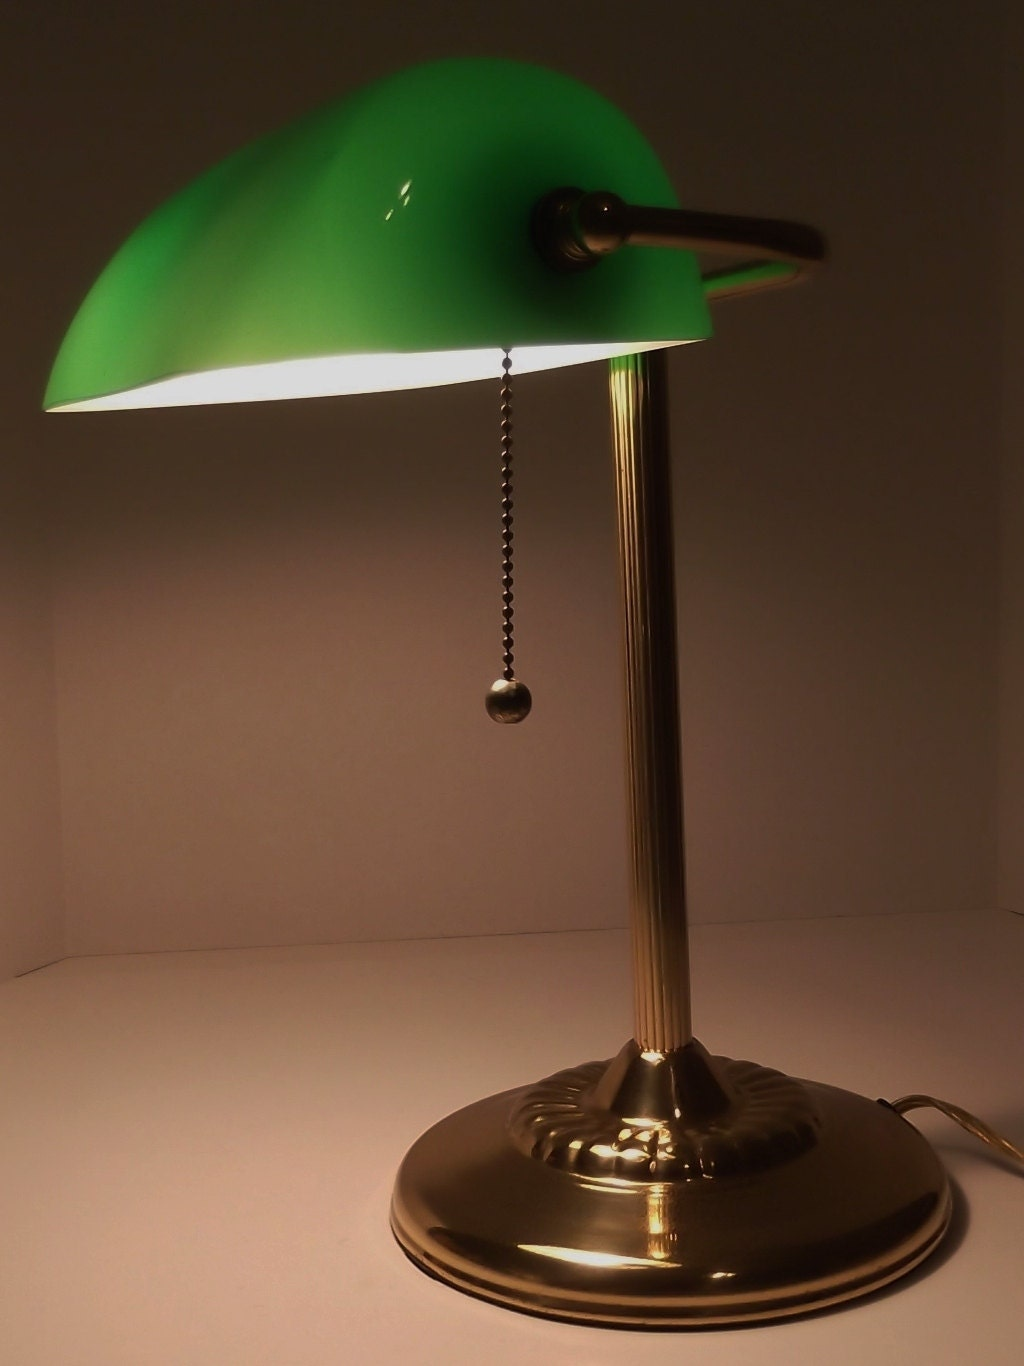 Vintage Bankers Lamp Desk Lamp Green Glass Shade